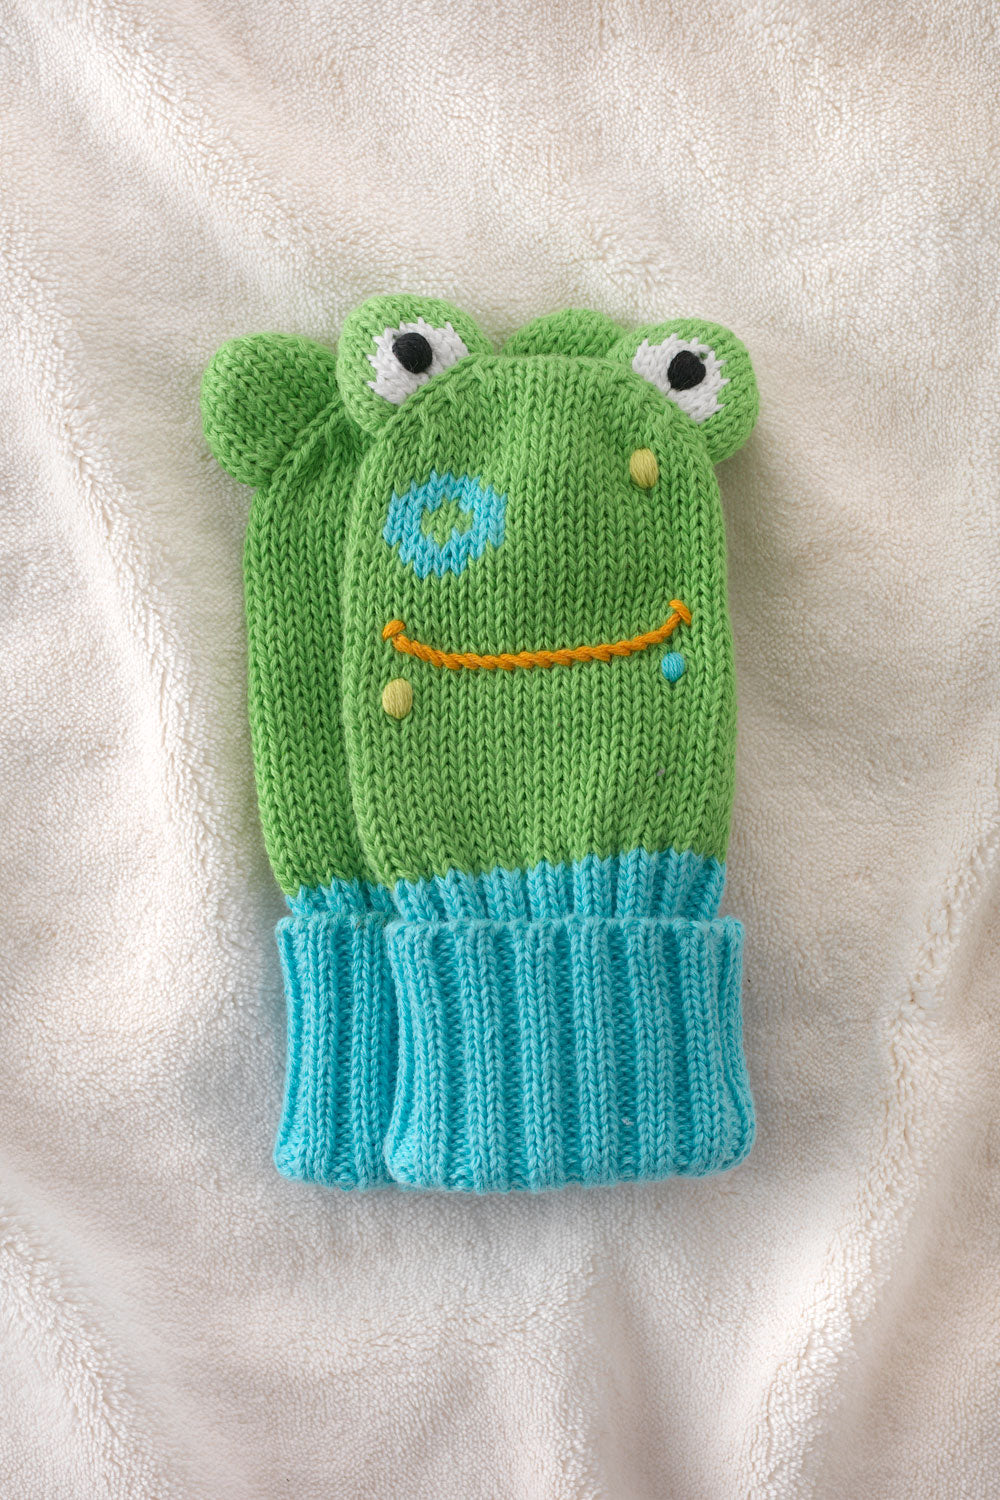 joobles-fair-trade-organic-baby-mittens-flop-the-frog